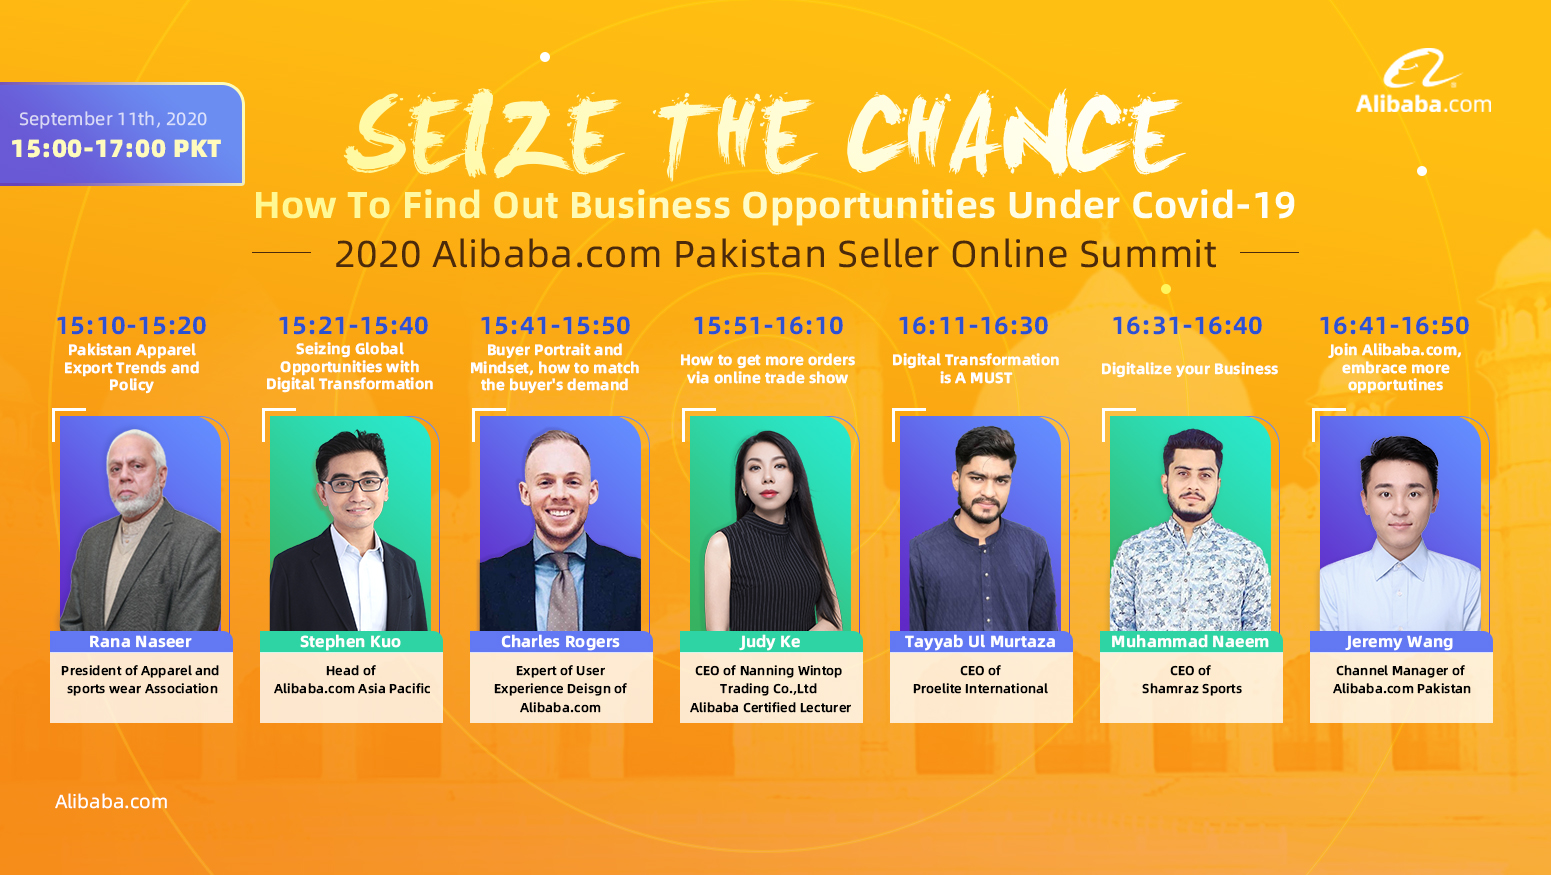 """SEIZE THE CHANCE"" -- 2020 Alibaba.com Pakistan Seller Online Summit"